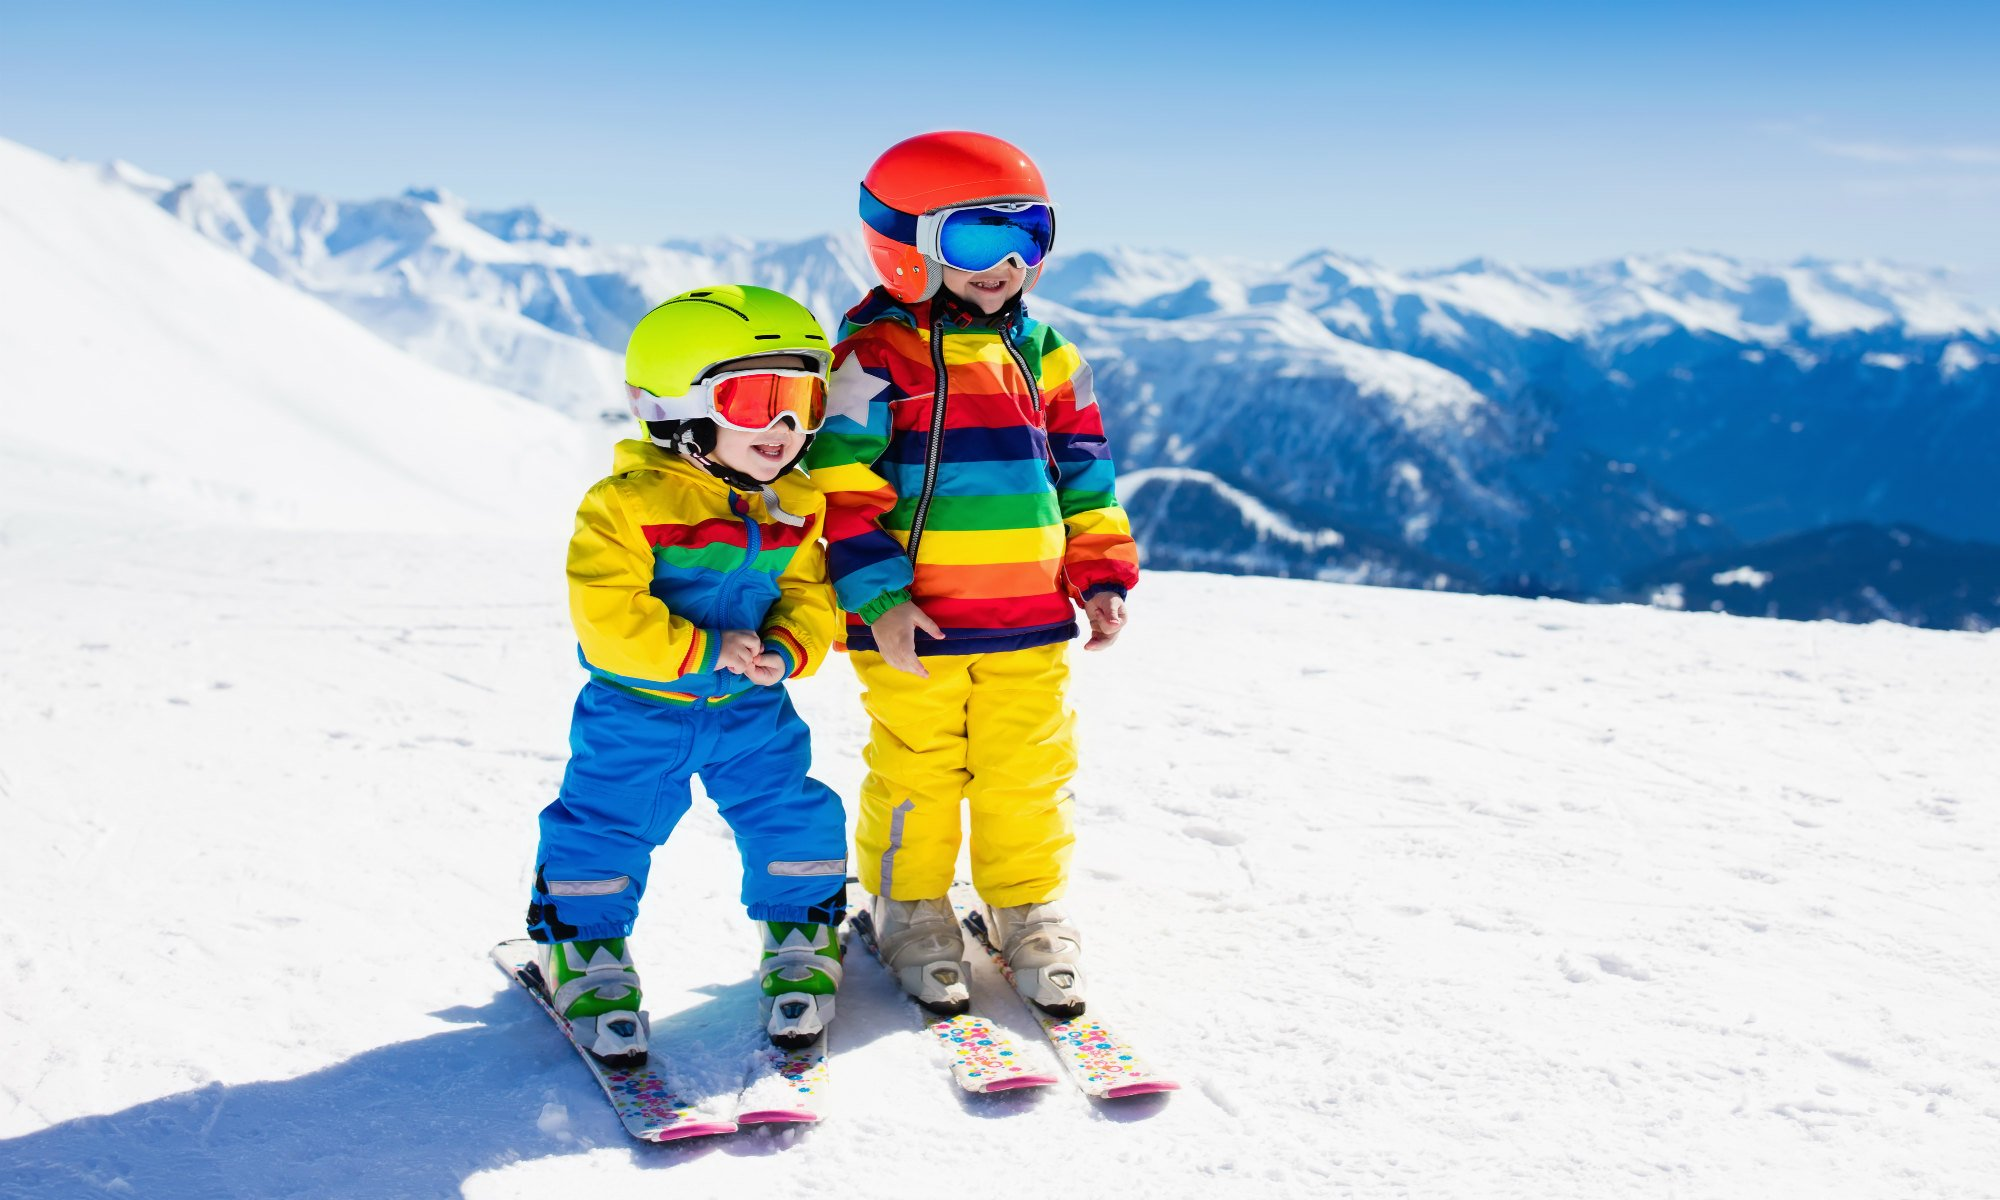 Two young skiers on the slopes in Les Gets.